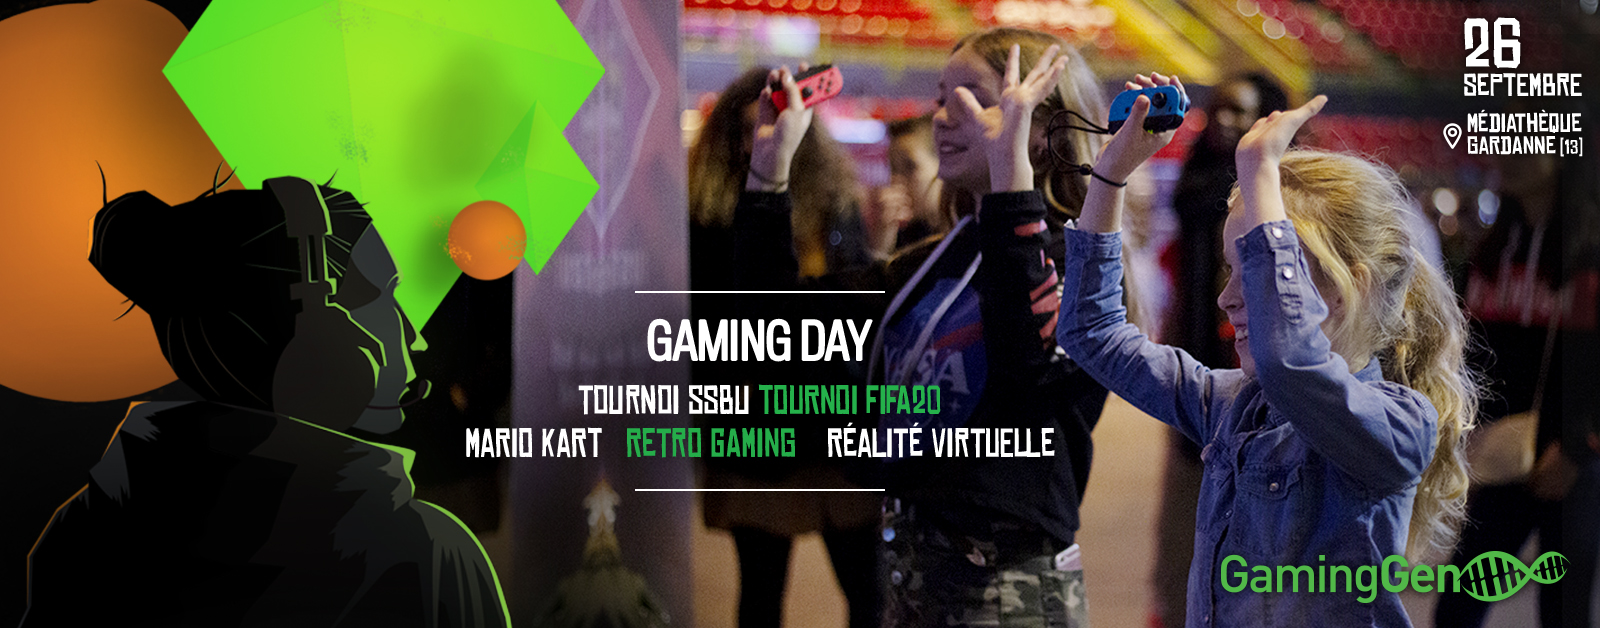 Gaming Day, 26 septembre à Gardanne